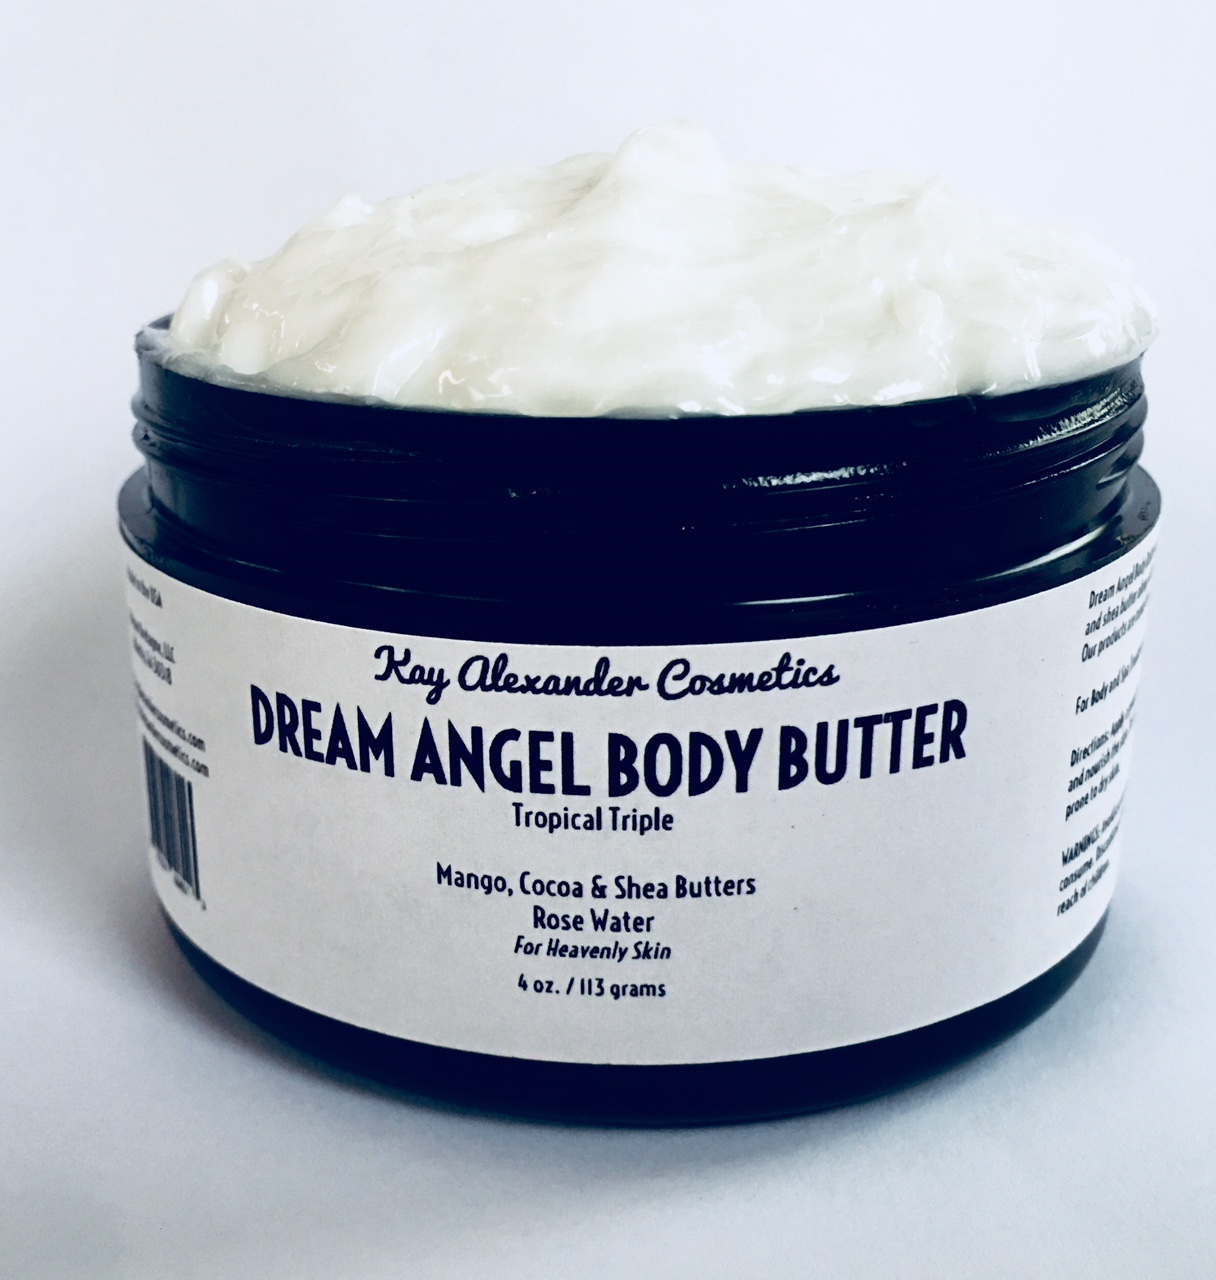 DREAM ANGEL BODY BUTTER PRODUCT DISPLAY PHOTO.jpg